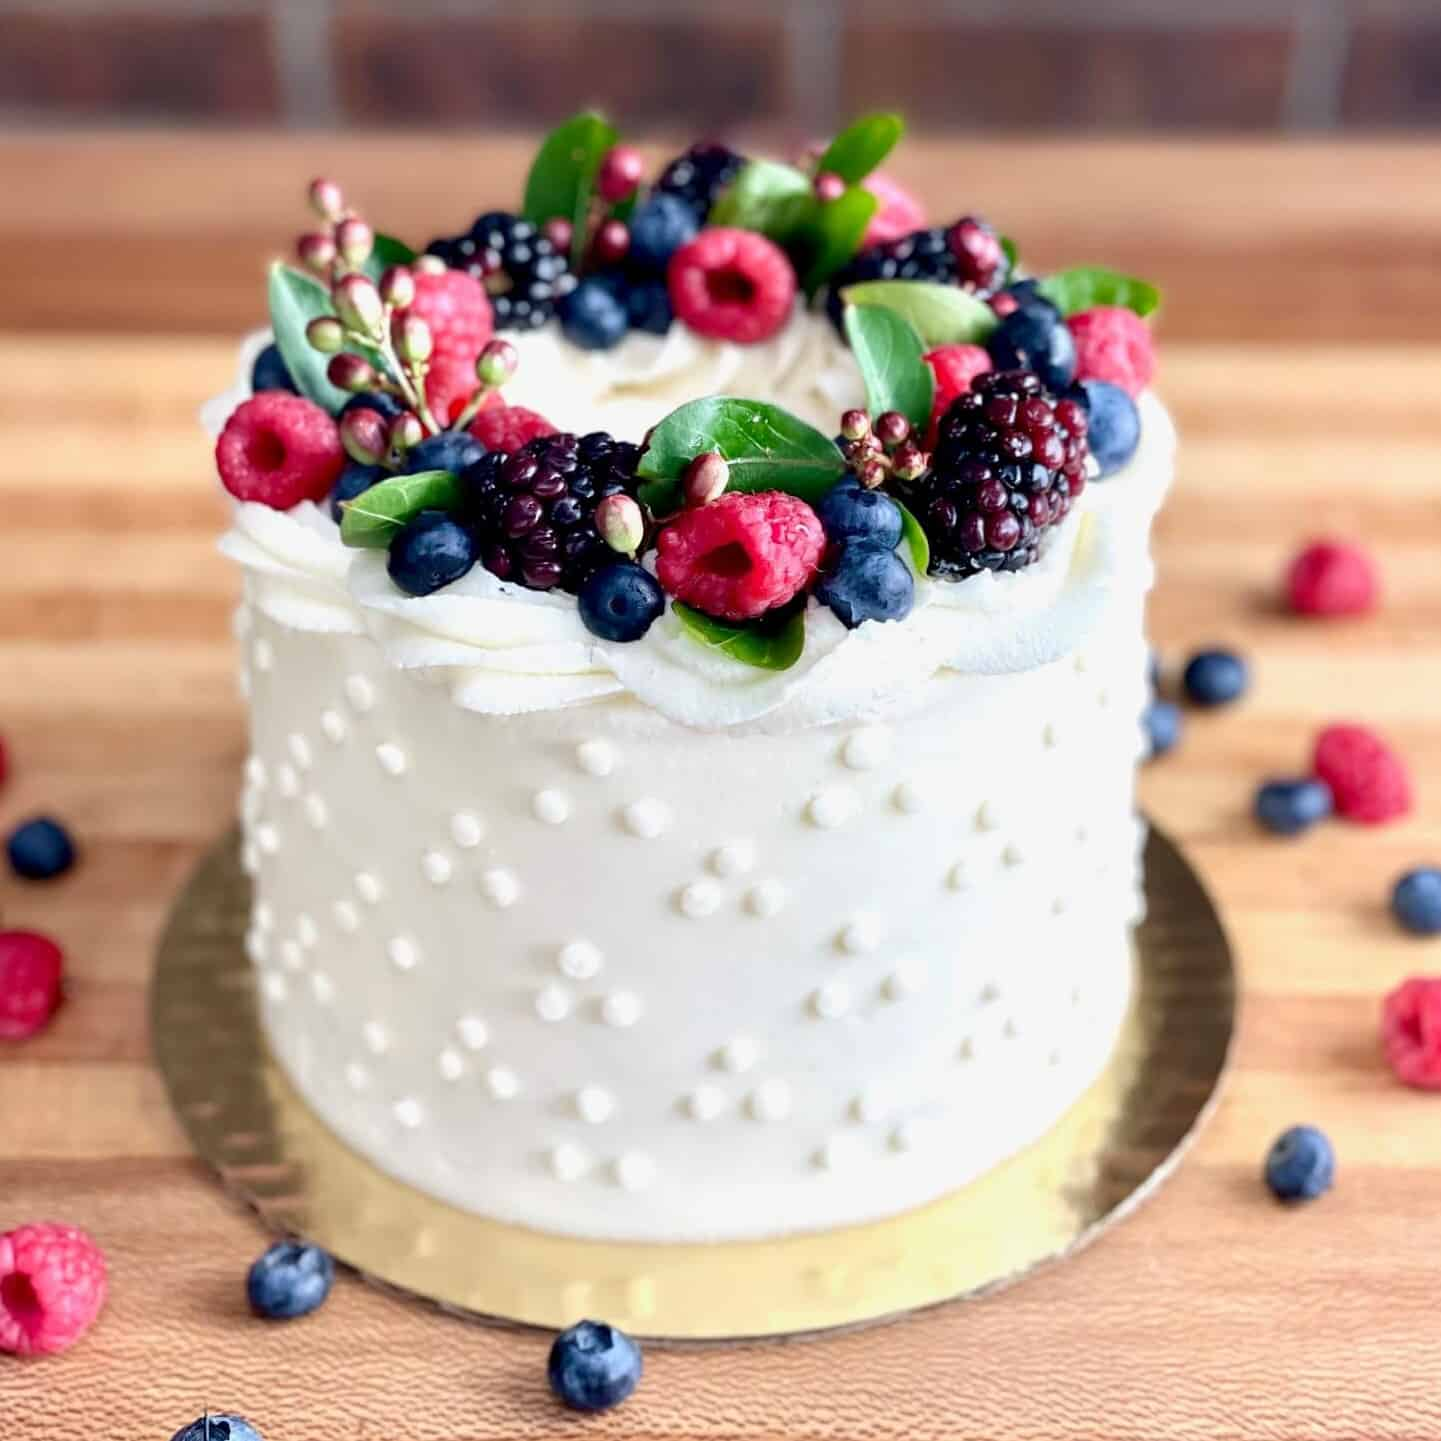 Vanilla Almond Cake with Triple Berry Compote Filling